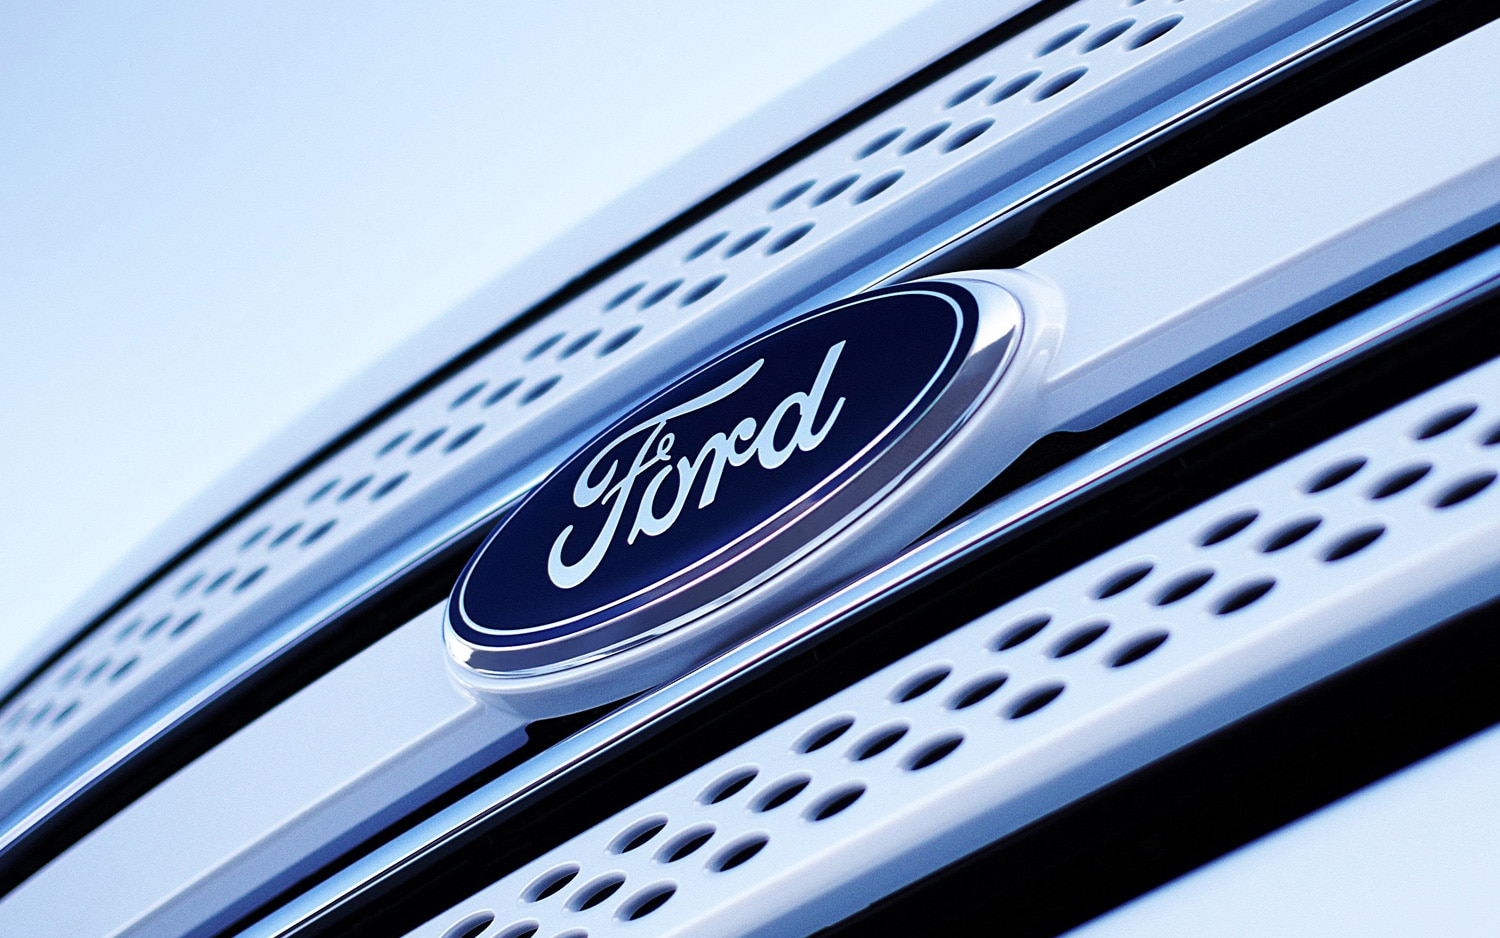 Ford Explorer Logo Front View